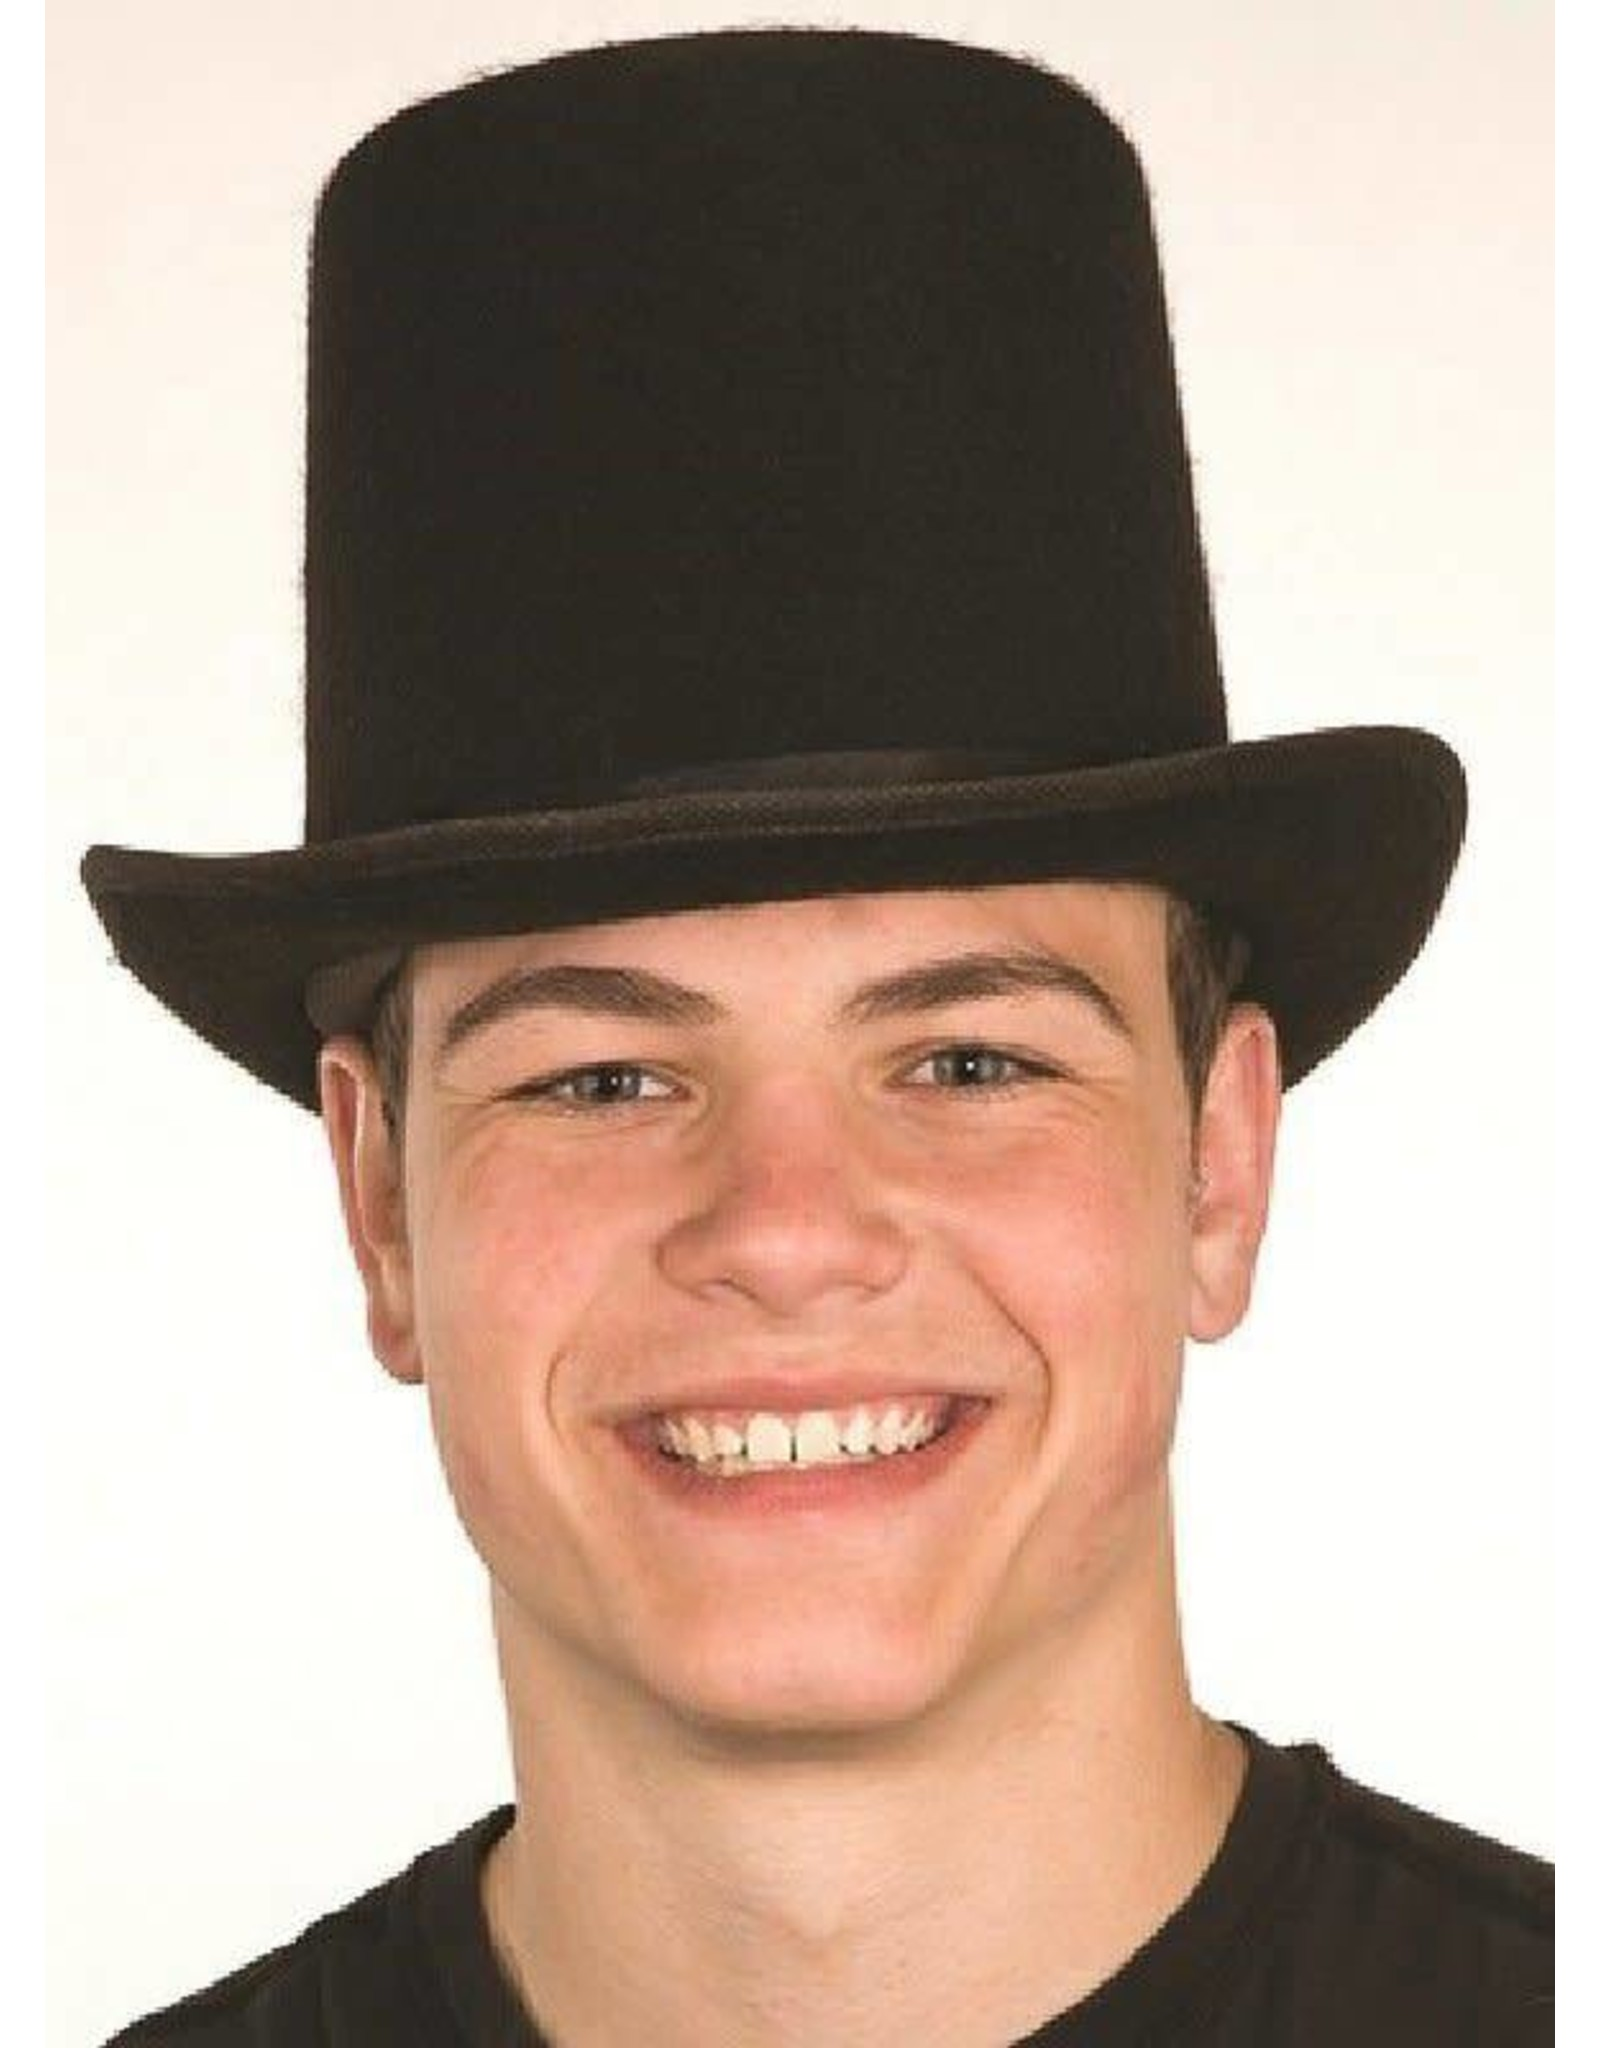 Jacobson Deluxe Felt Tall Tophat